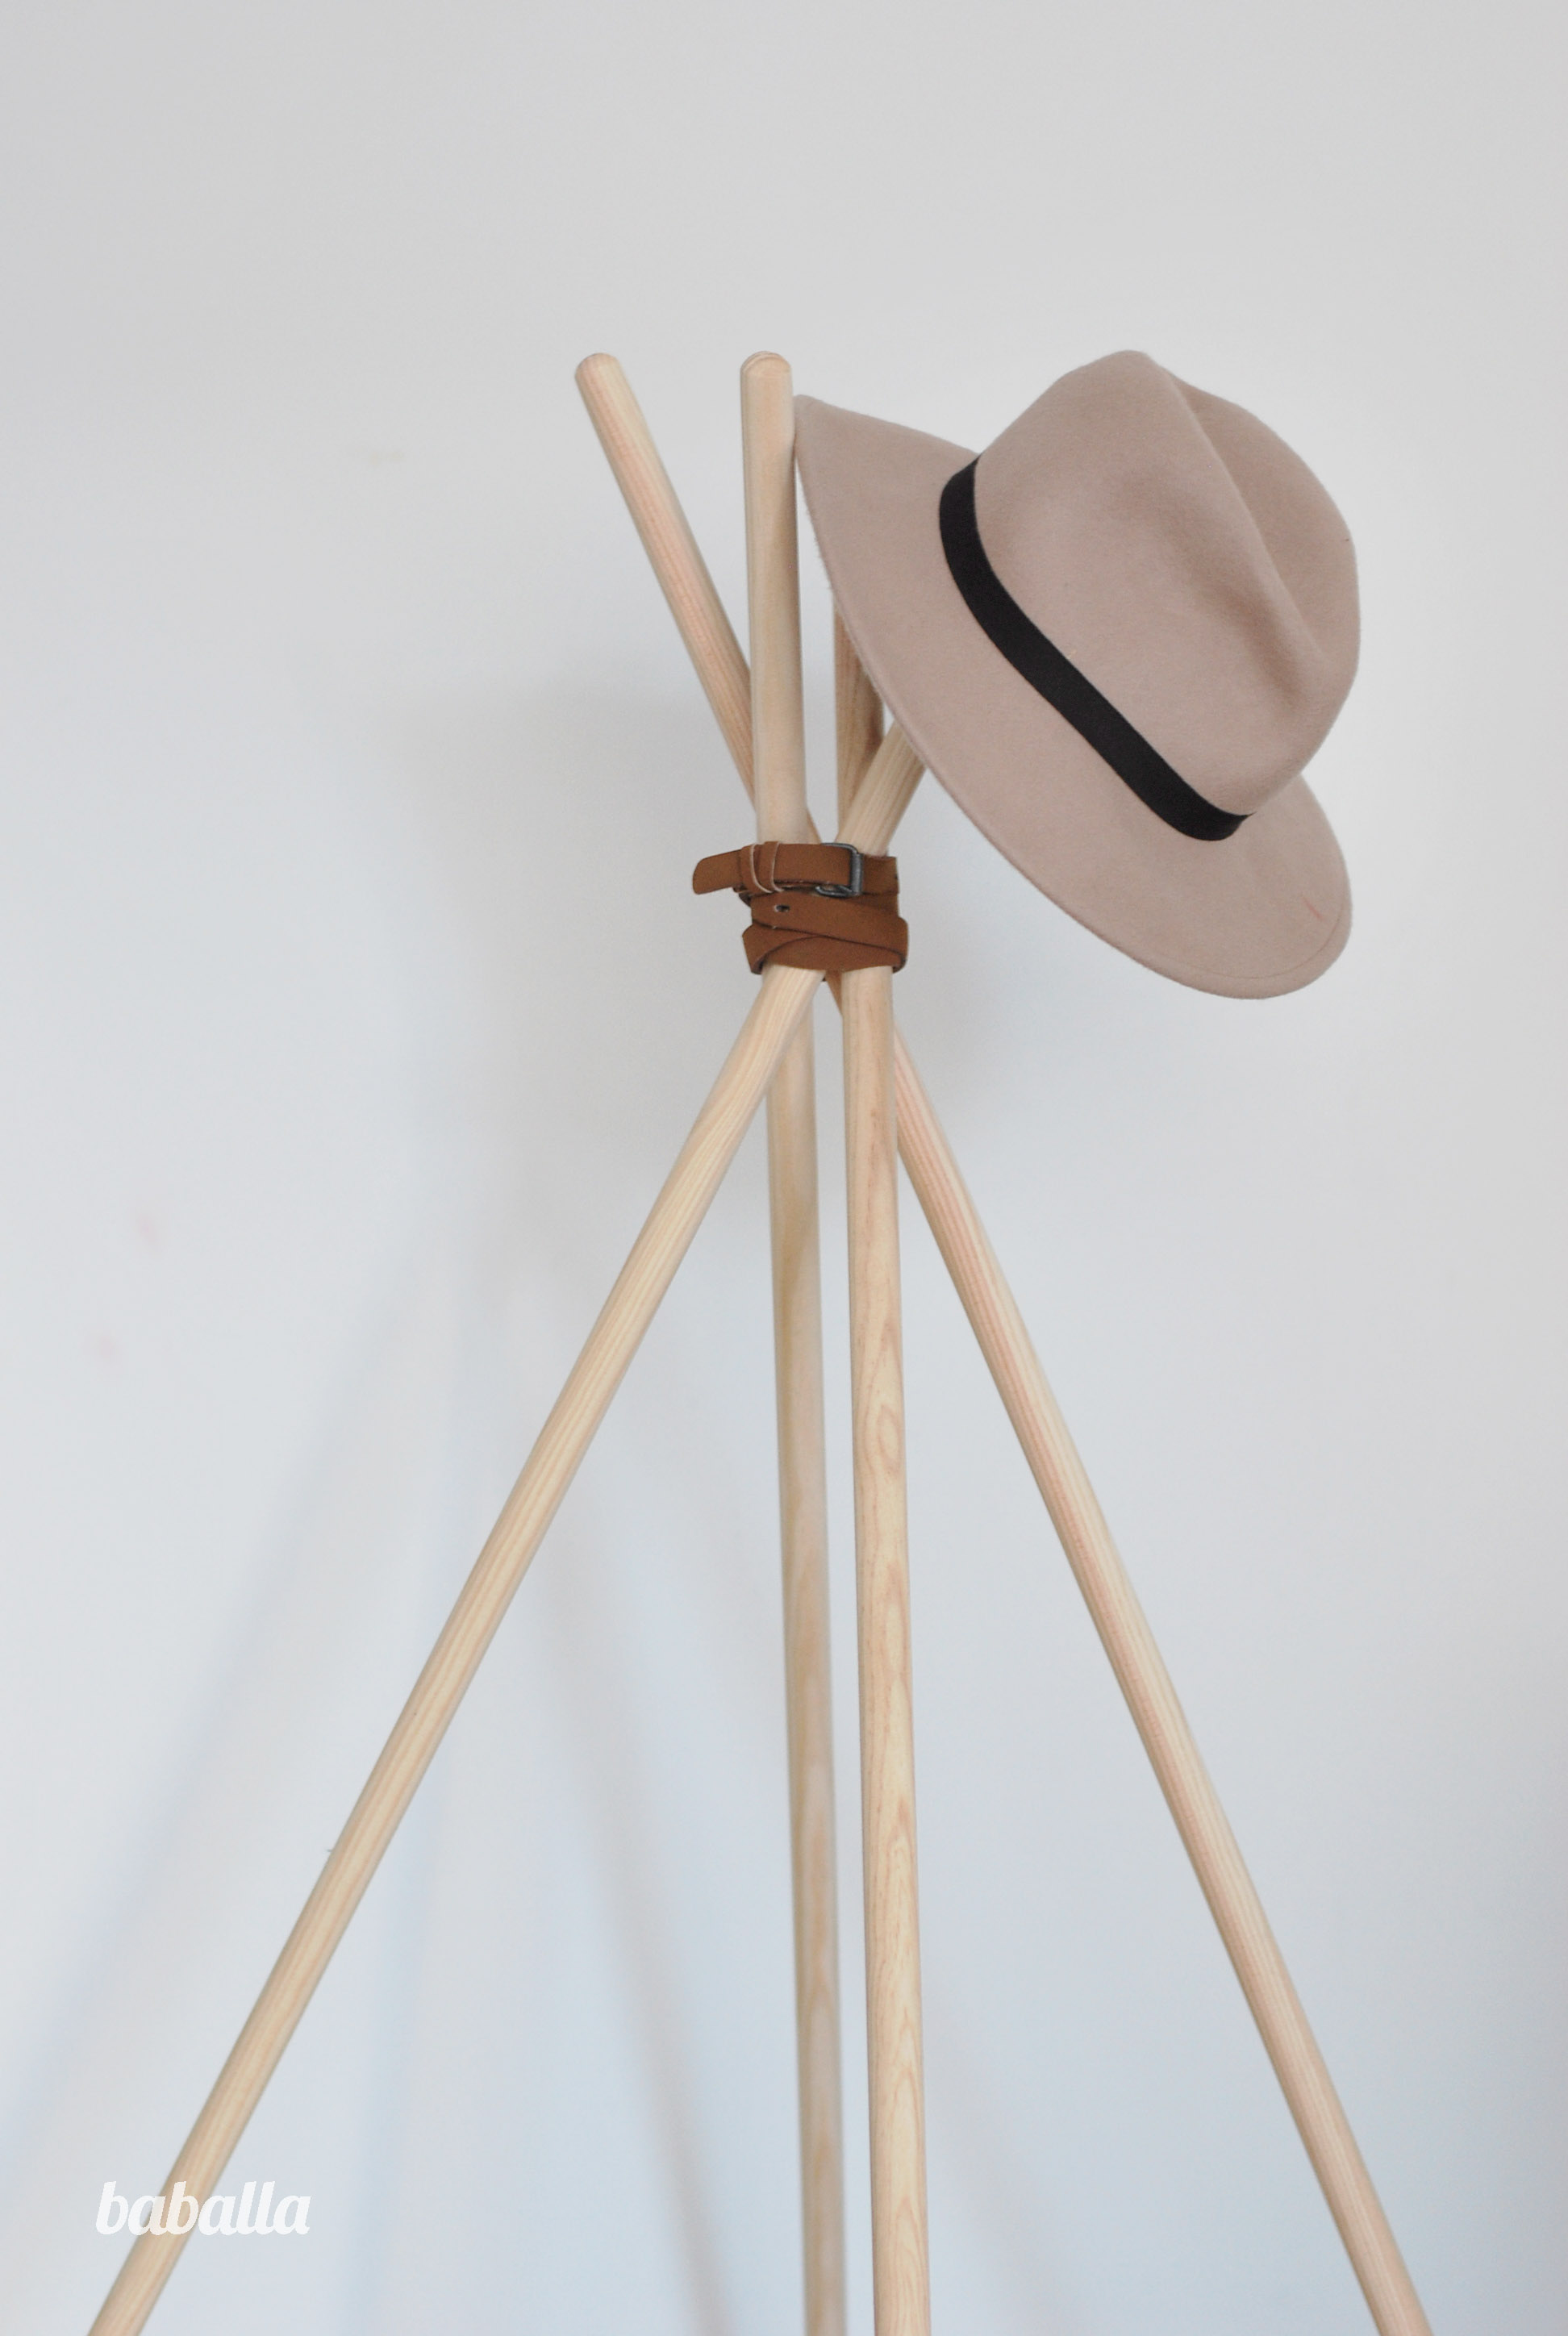 Diy perchero tipi diy baballa for Que es un perchero